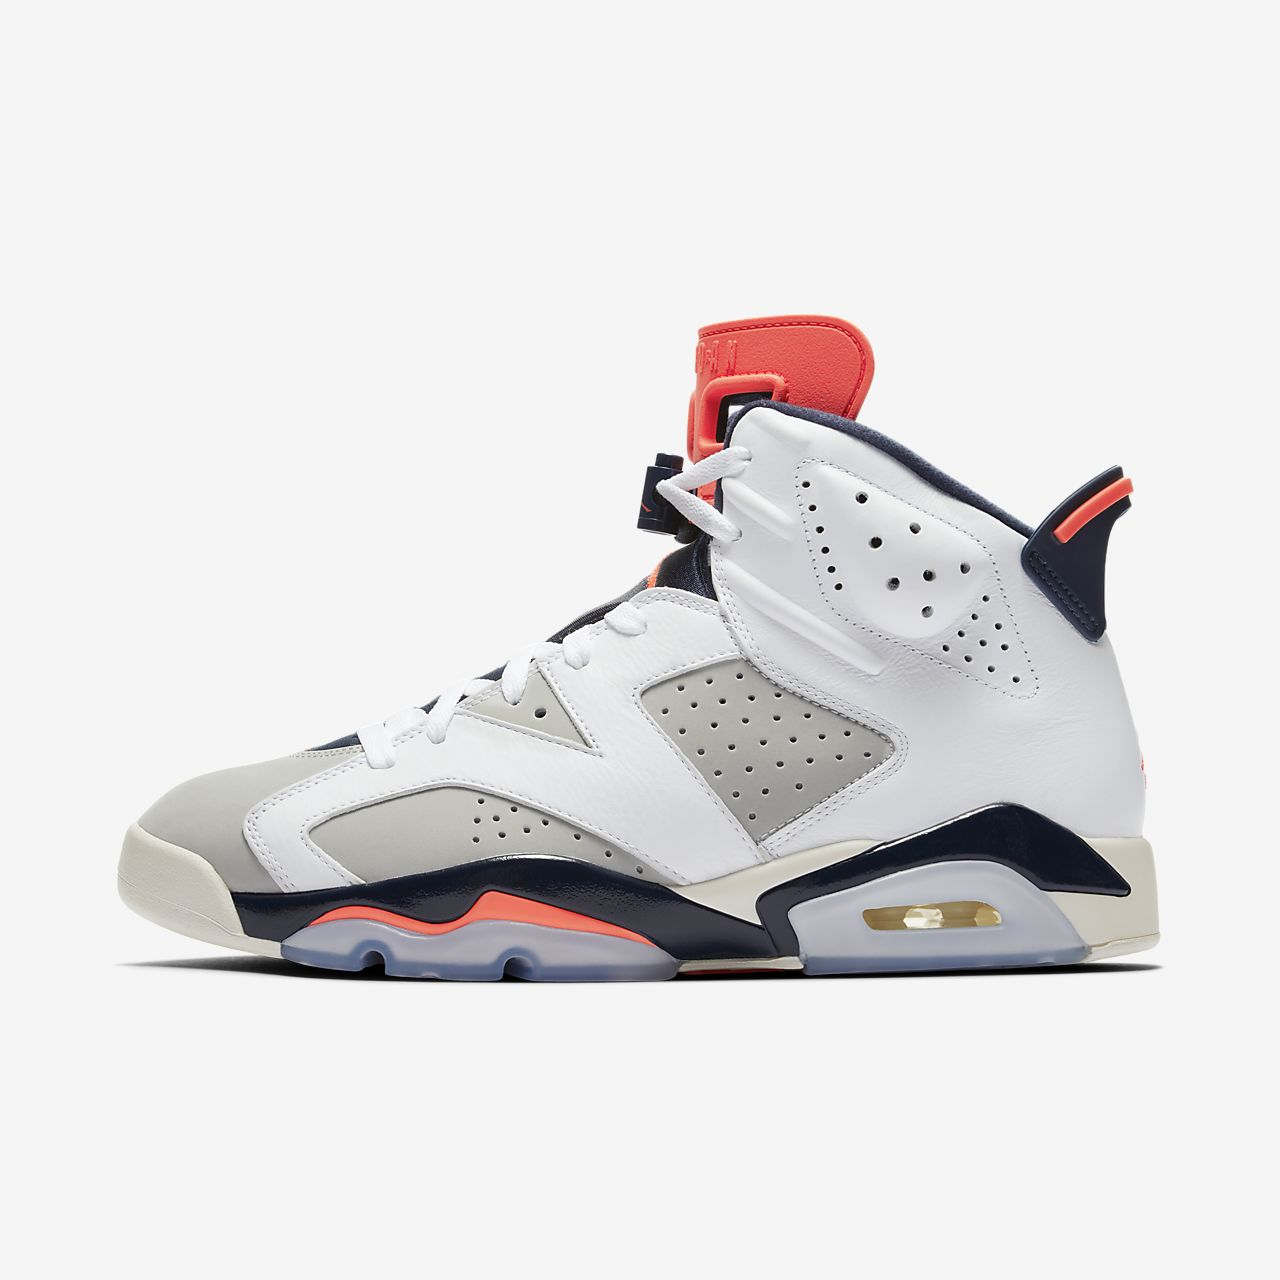 new style 903b4 19a9f Air Jordan 6 Retro